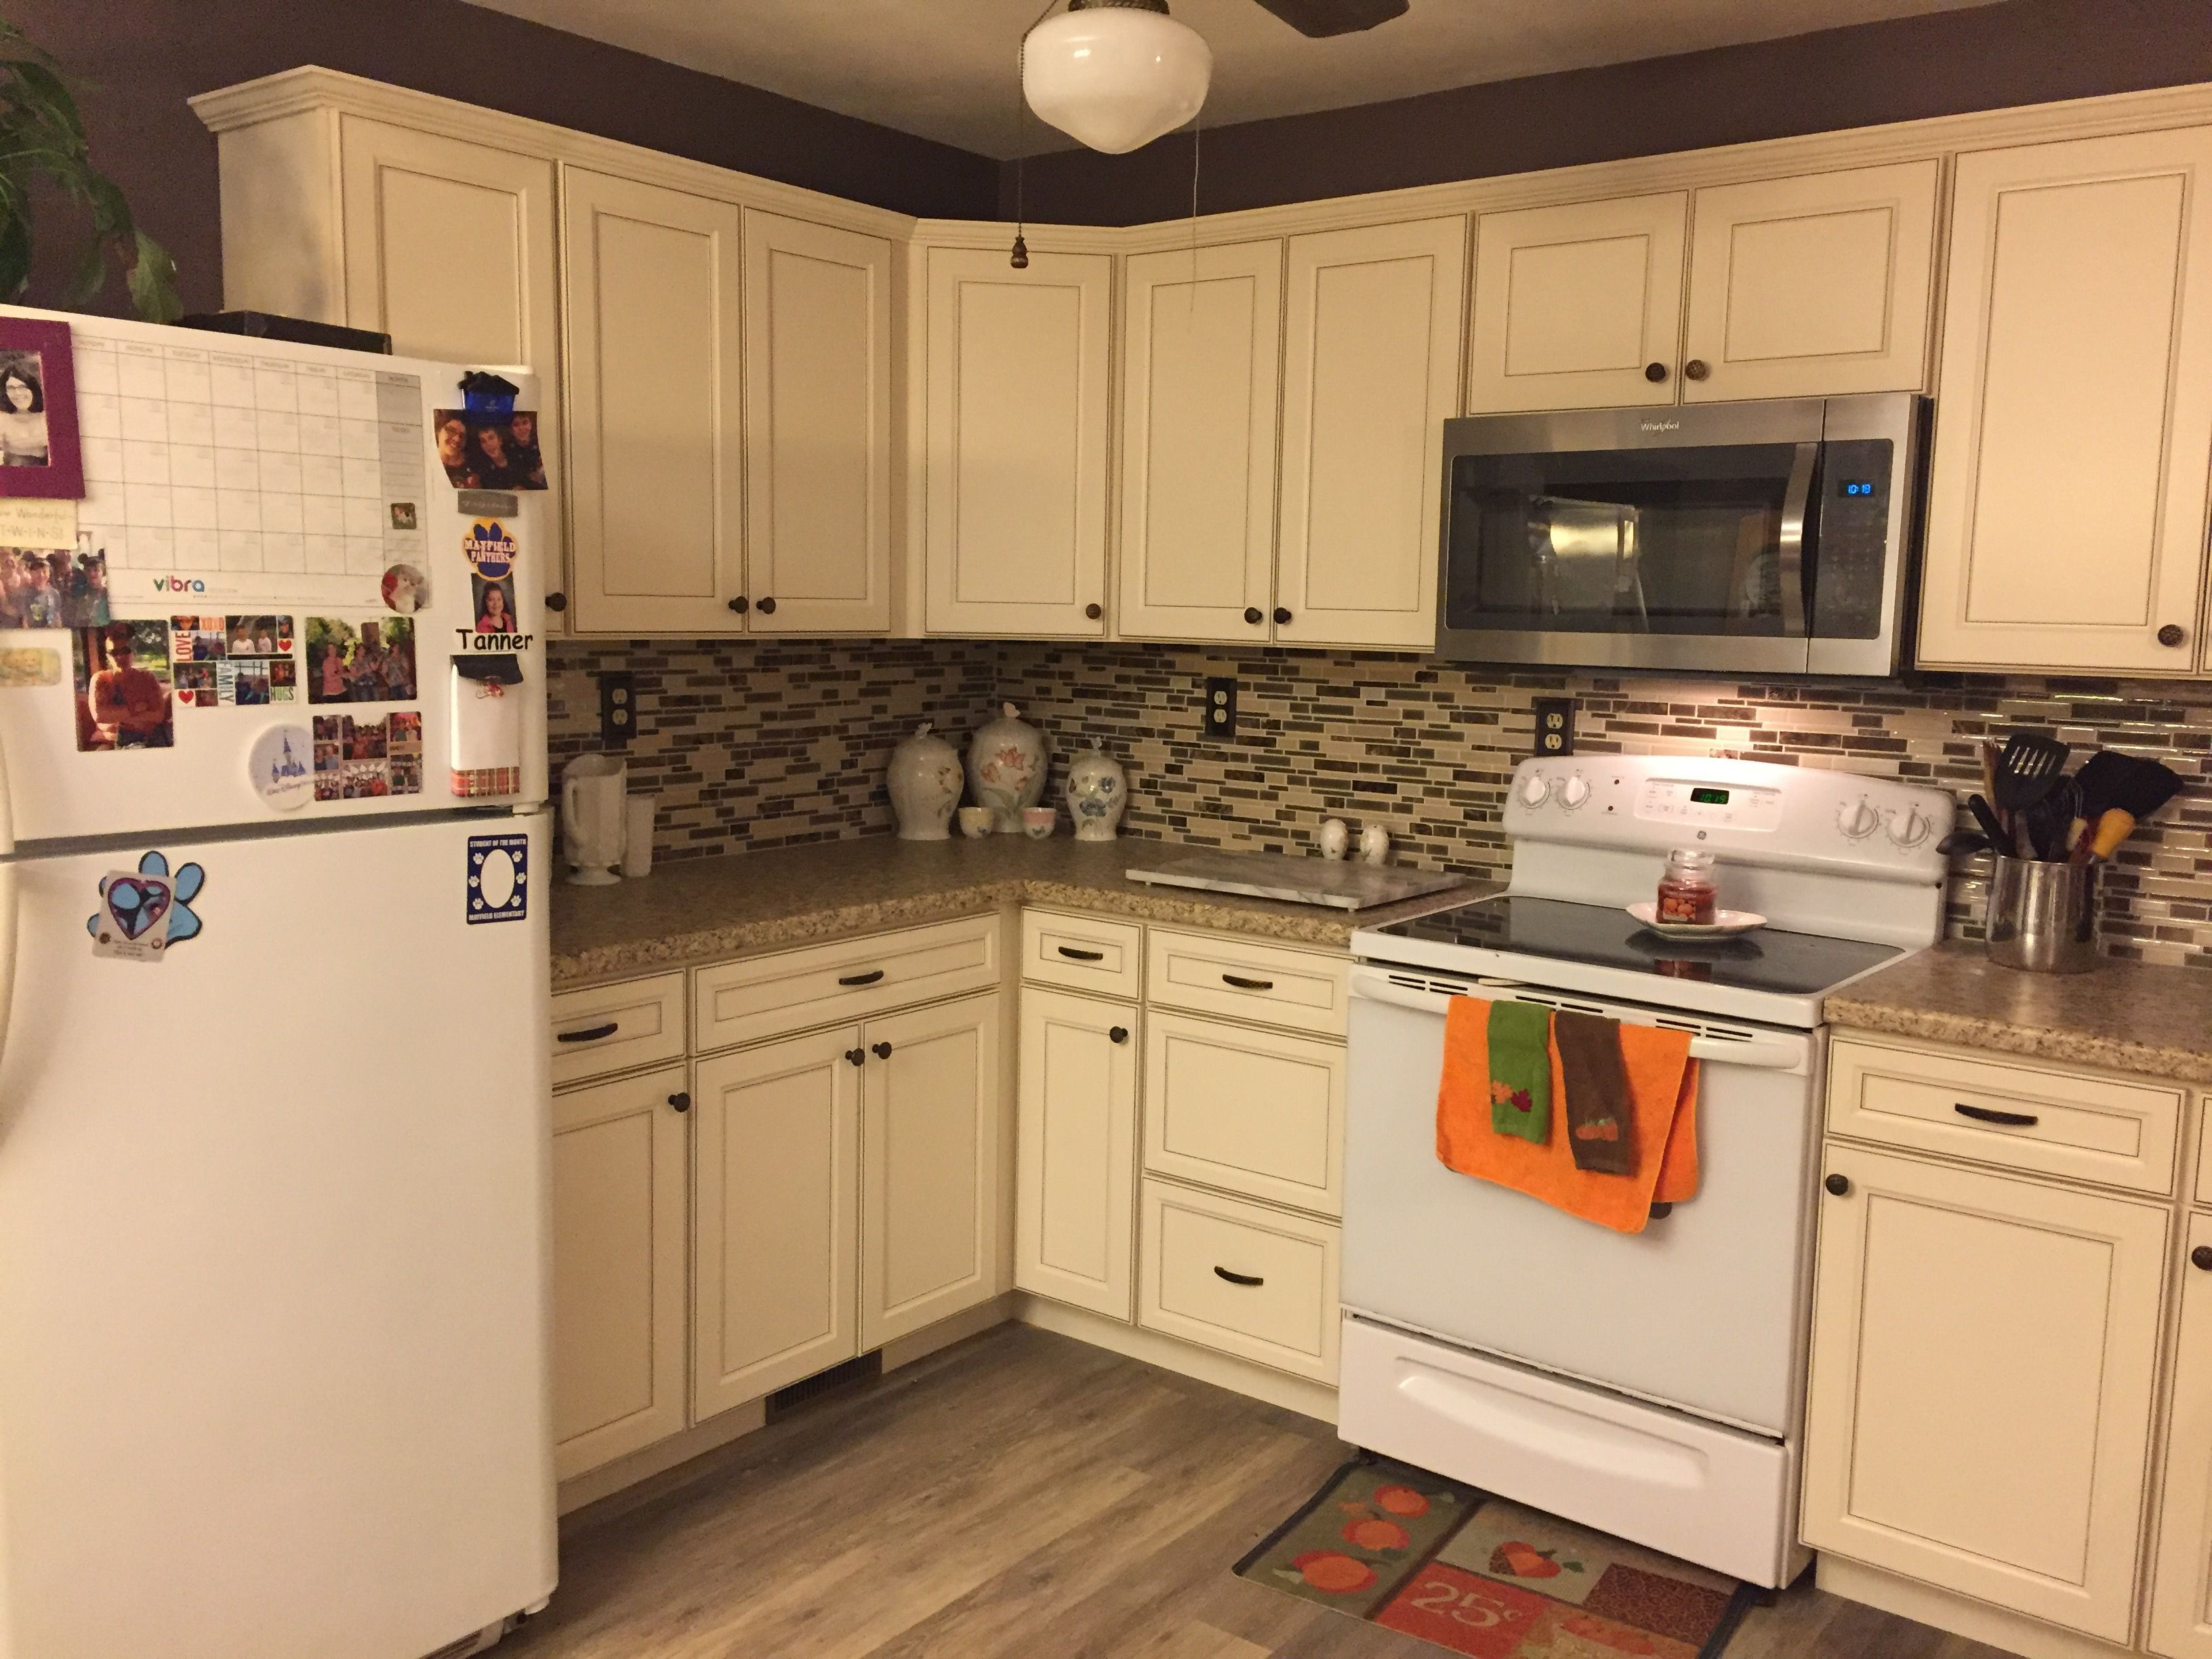 Lowes Caspian Cabinets | Off White Kitchen Cabinets in ...